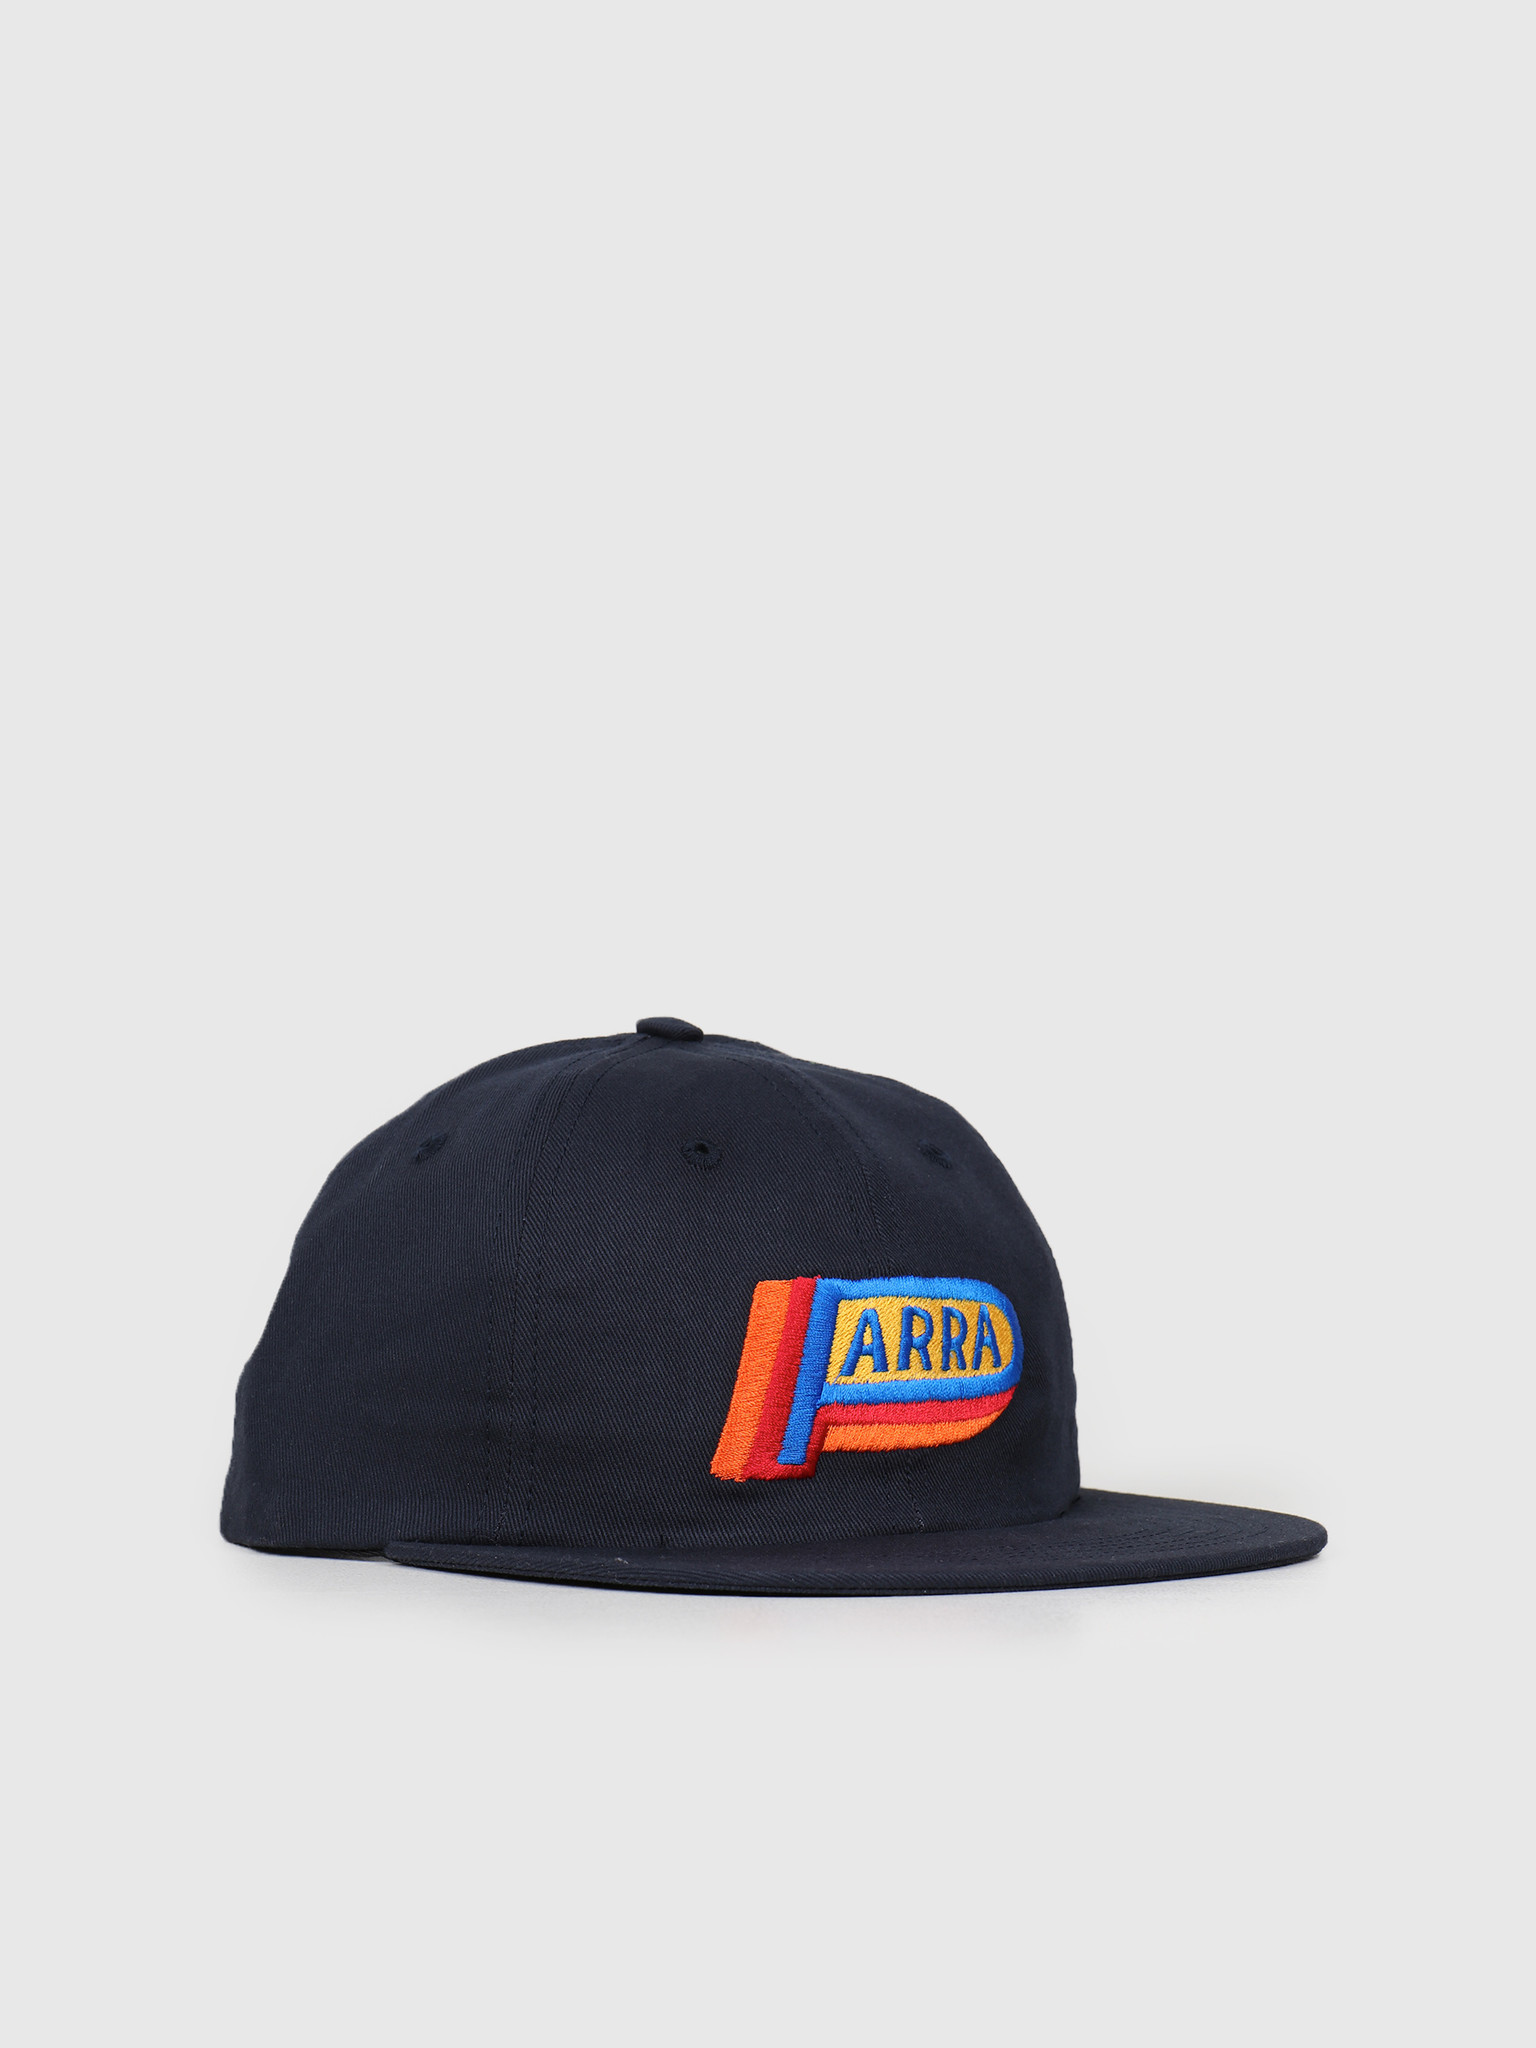 By Parra By Parra 6 Panel Hat Garage Oil Navy Blue 42340